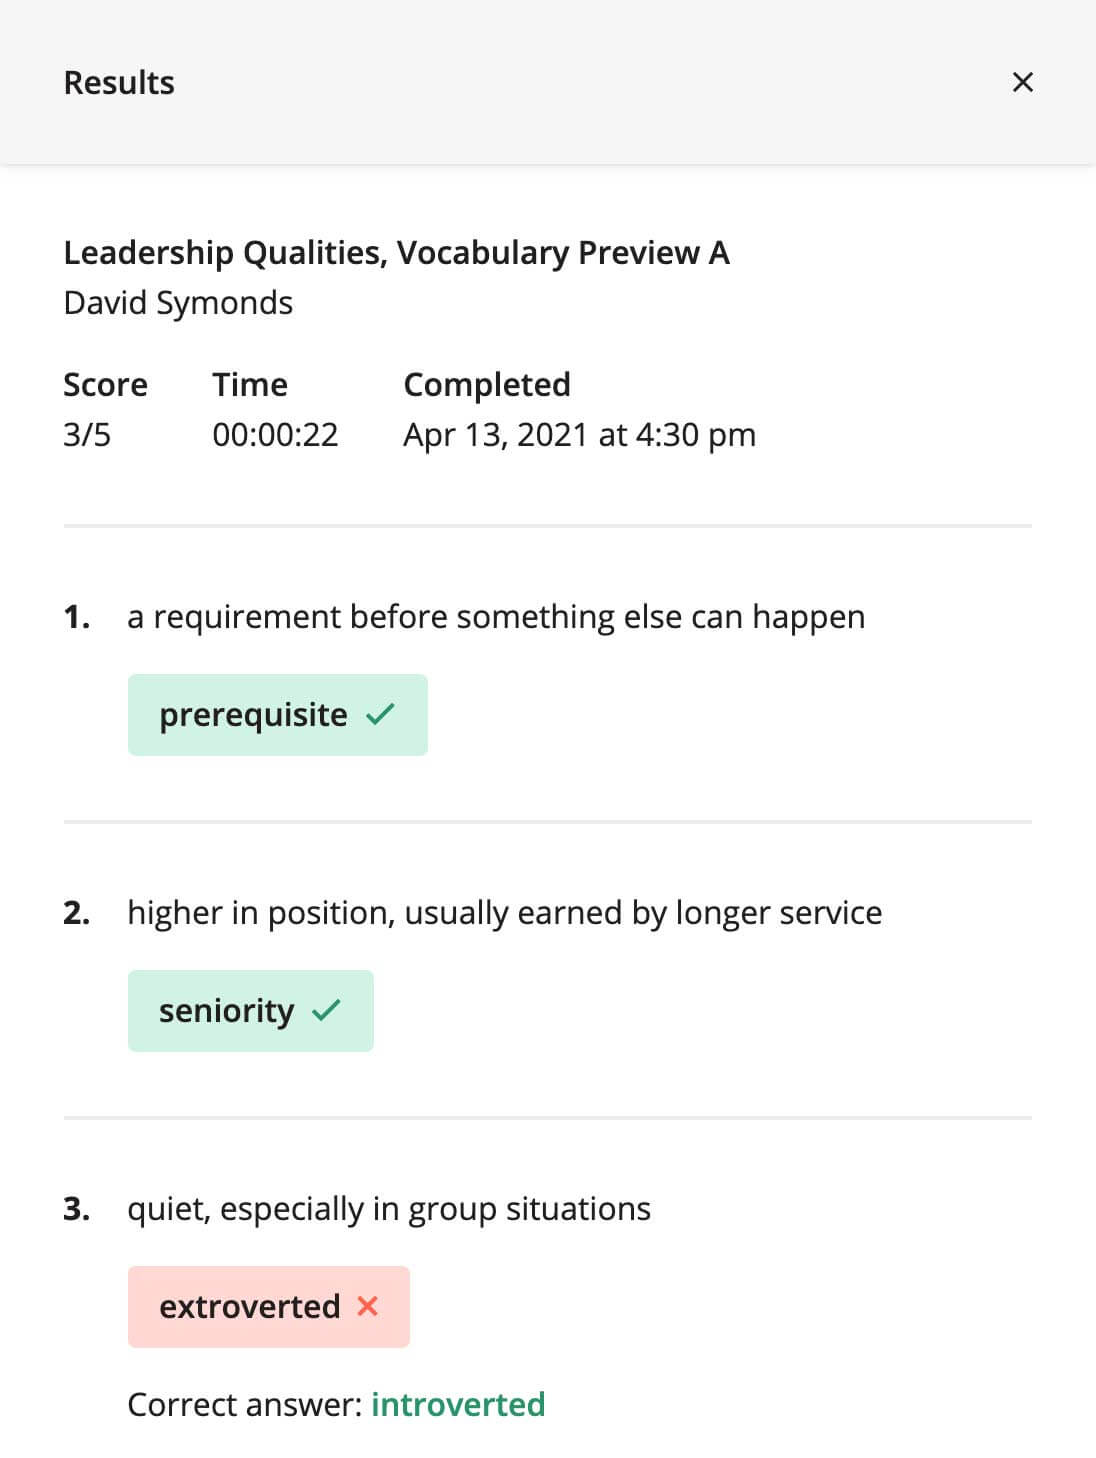 A results modal for a student's vocabulary preview task. It shows the student's final score, time on task, completion time, as well as their answers.